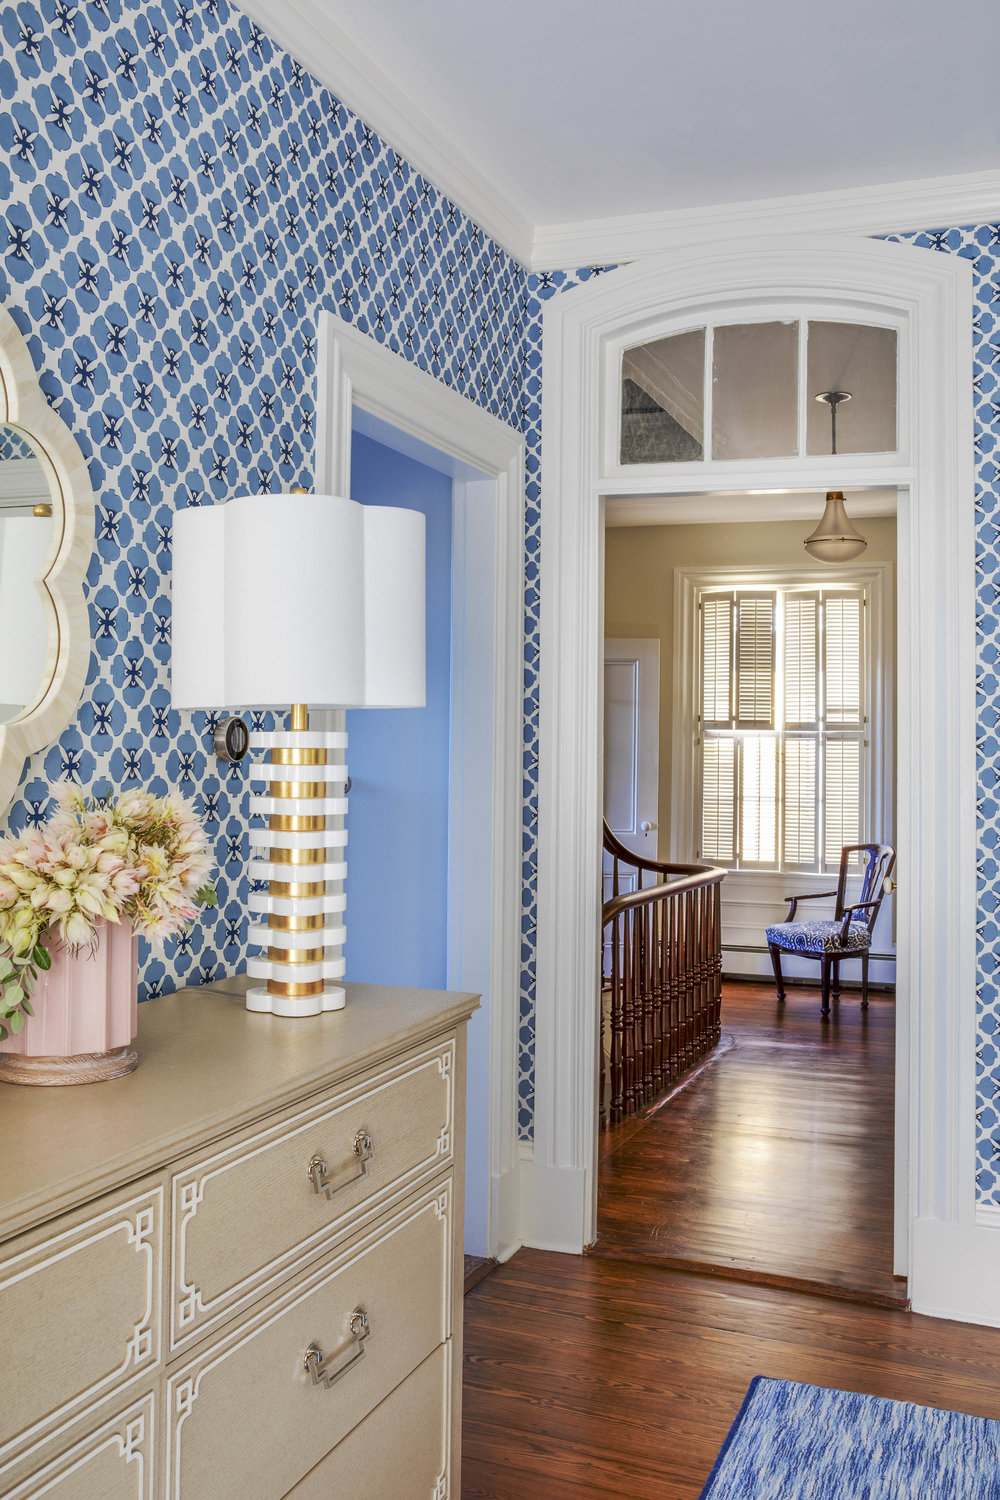 Digs Design, Digs, Digs Design Company, Interior Design, Jocelyn Chiappone, Rhode Island, Newport, Providence, Benefit Street, Master bedroom, bedroom